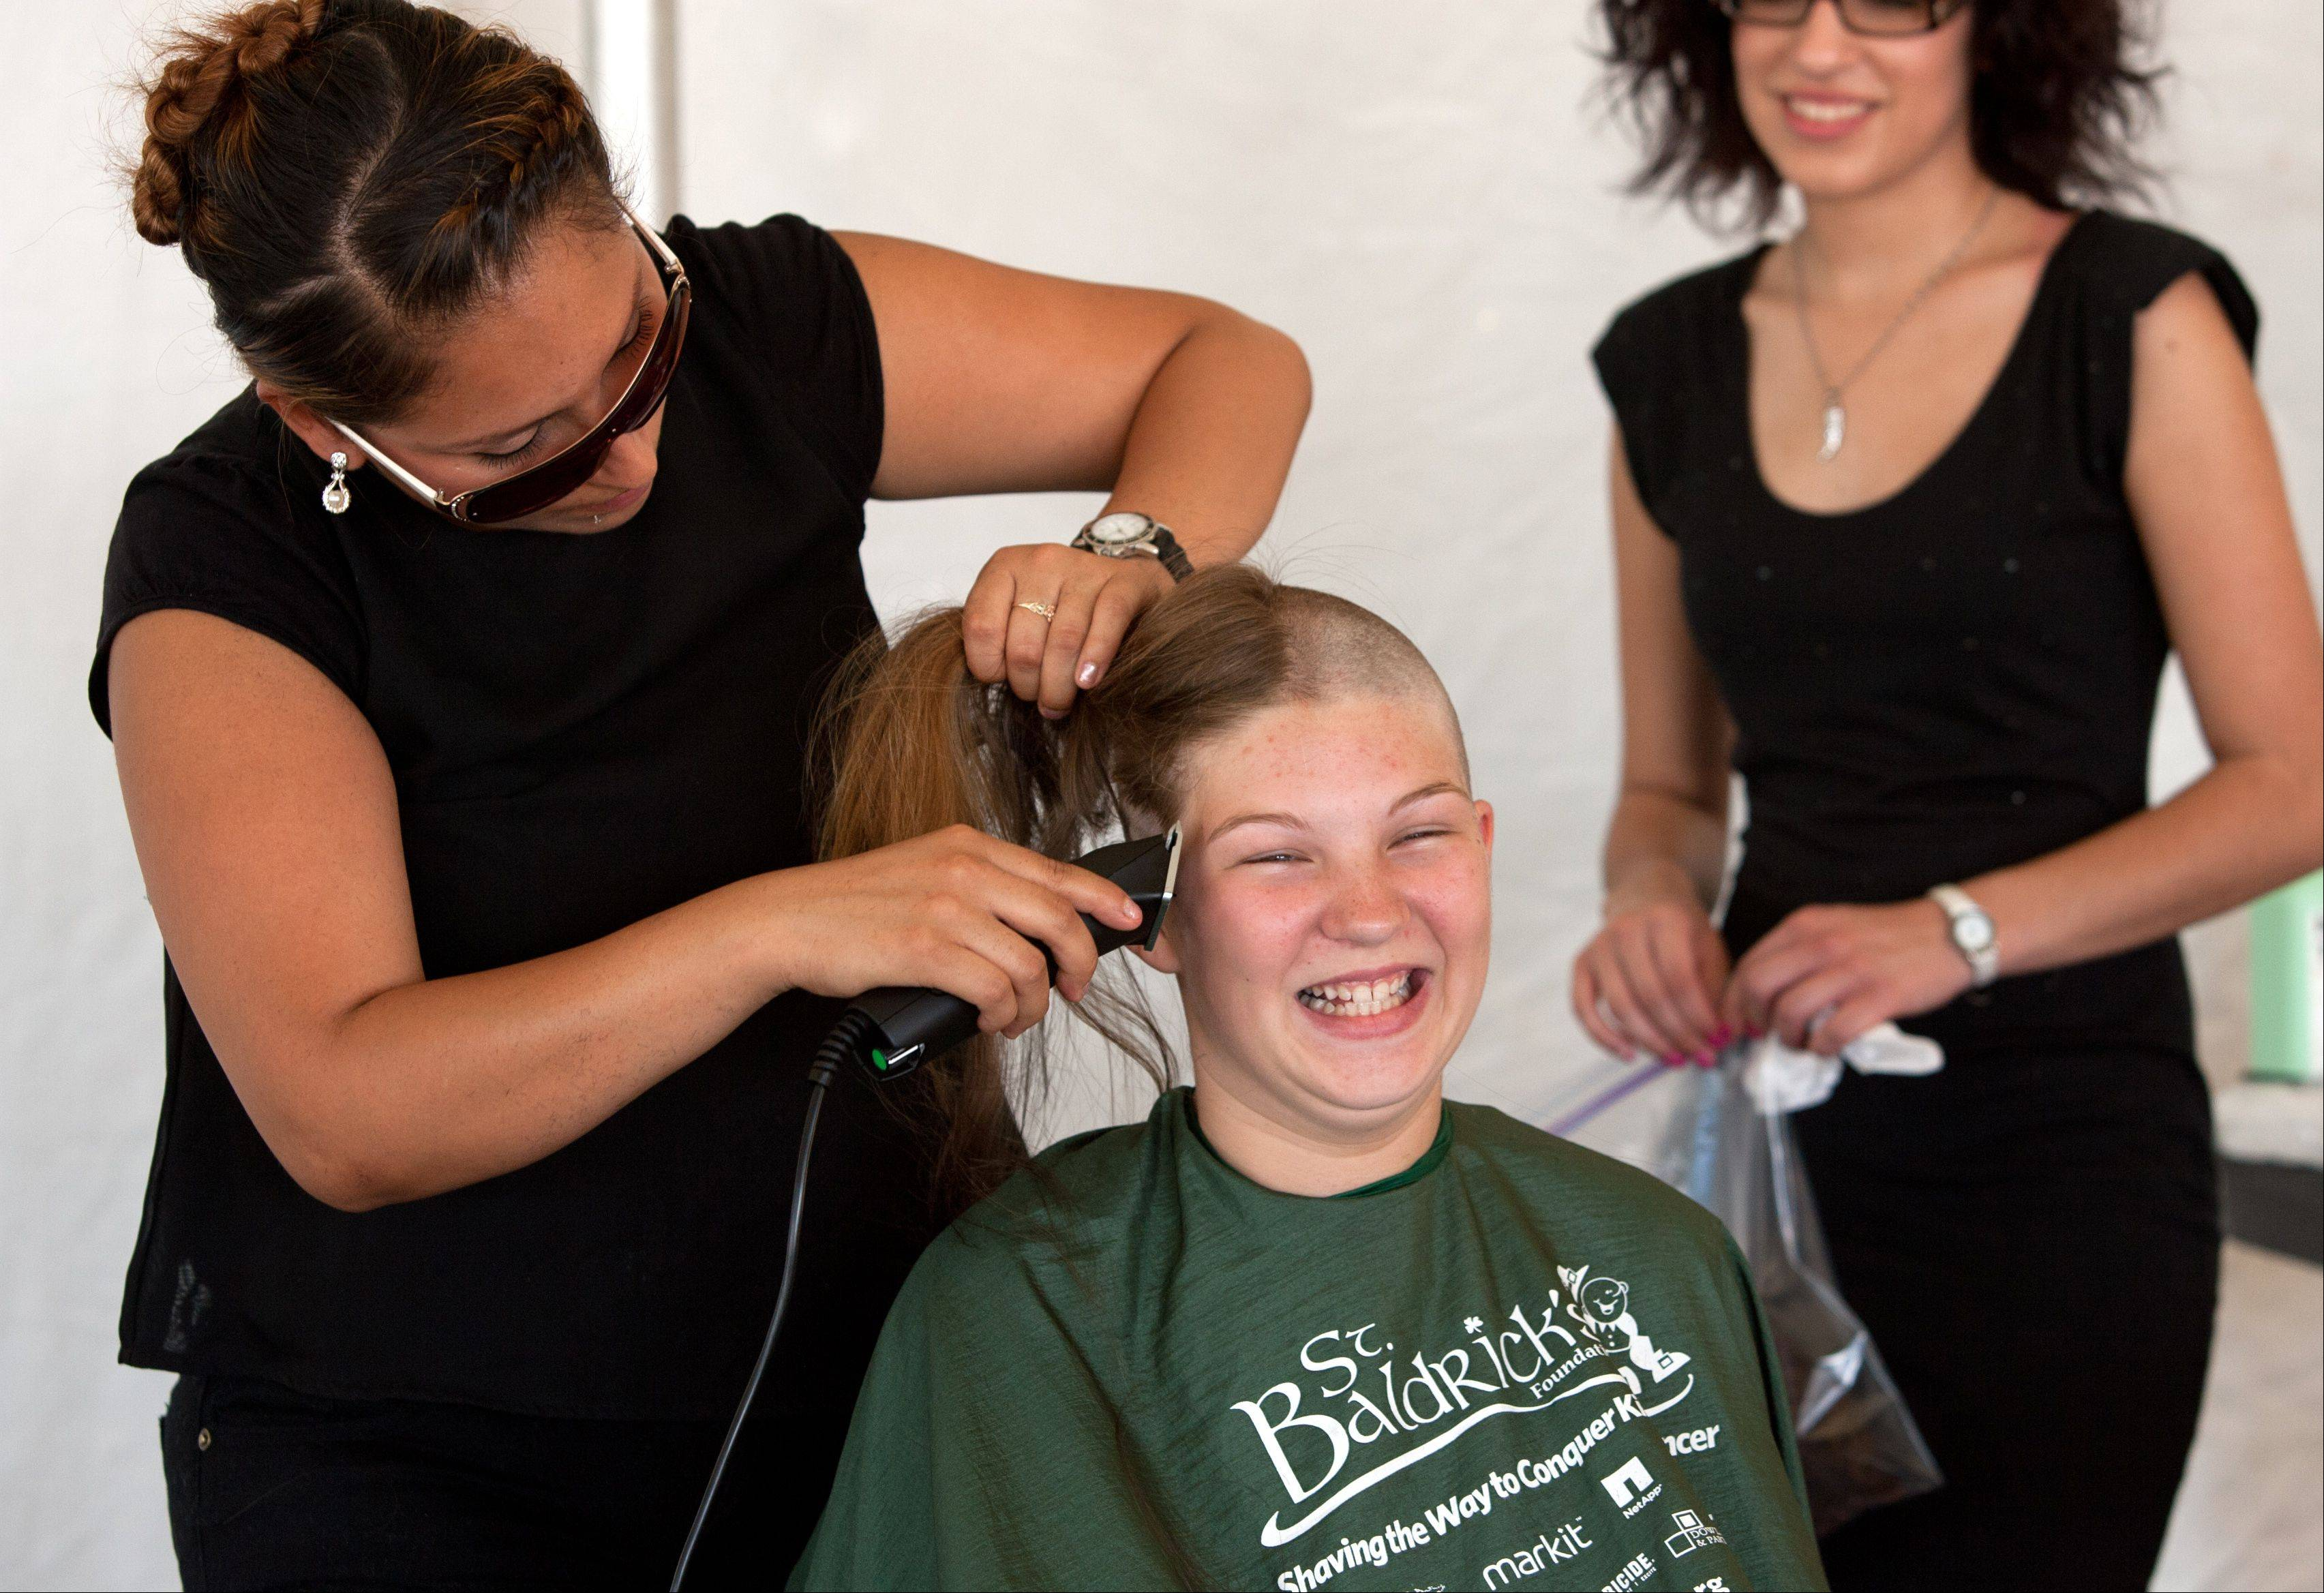 Jessica Nichols, 11, of Downers Grove, enjoys her first head-shaving experience Saturday at the Taste of Lombard as she participates in a St. Baldrick's Foundation shave-a-thon. Cristy Vazquez of Paul Mitchell, The School in Chicago, was among hairdressers who volunteered to do the shaving.